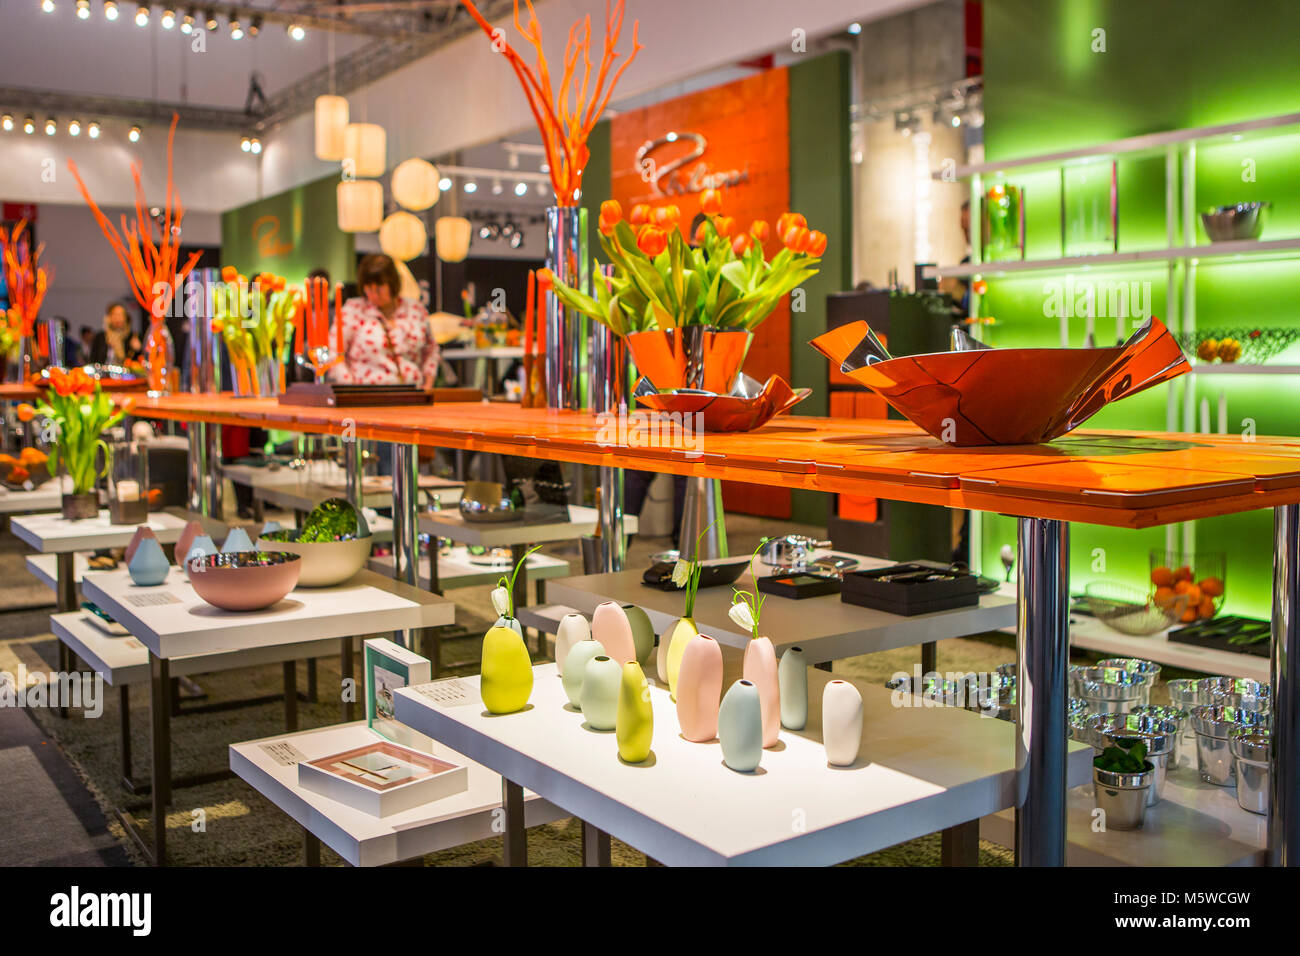 Frankfurt, Germany. 9th Feb, 2018. Ambiente 2018 (9th to 13th Feb, 2018), world's most important consumer goods - Stock Image